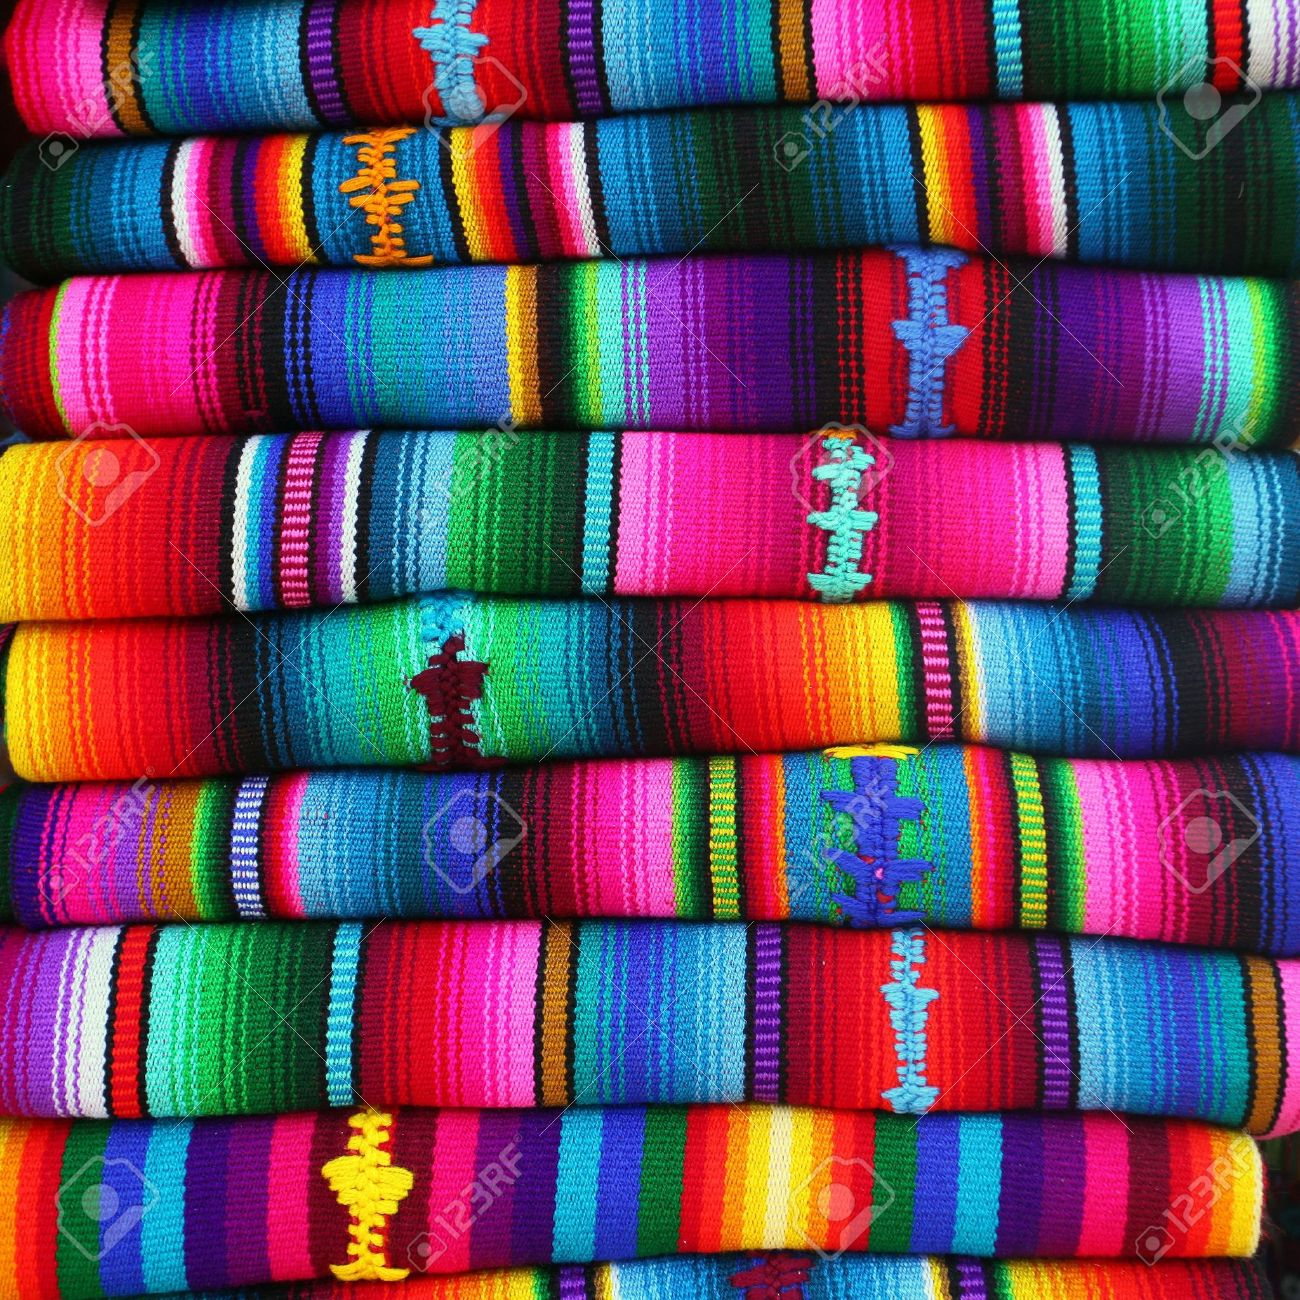 colorful blankets from guatemala stock photo picture and royalty  - colorful blankets from guatemala stock photo